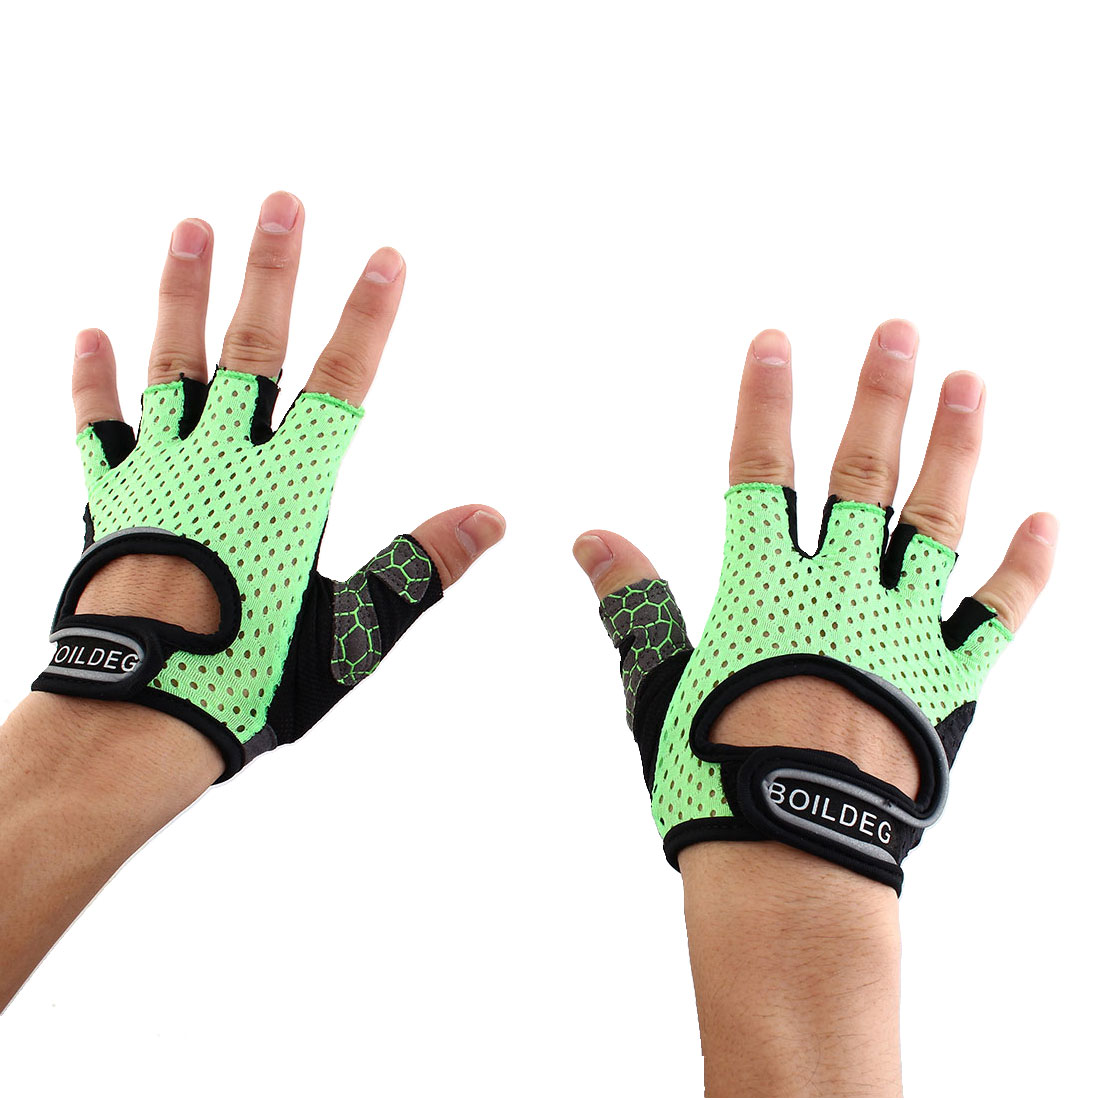 BOILDEG Authorized Unisex Sports Weight Fitness Exercise Workout Breathable Palm Support Gloves Green Size XL Pair